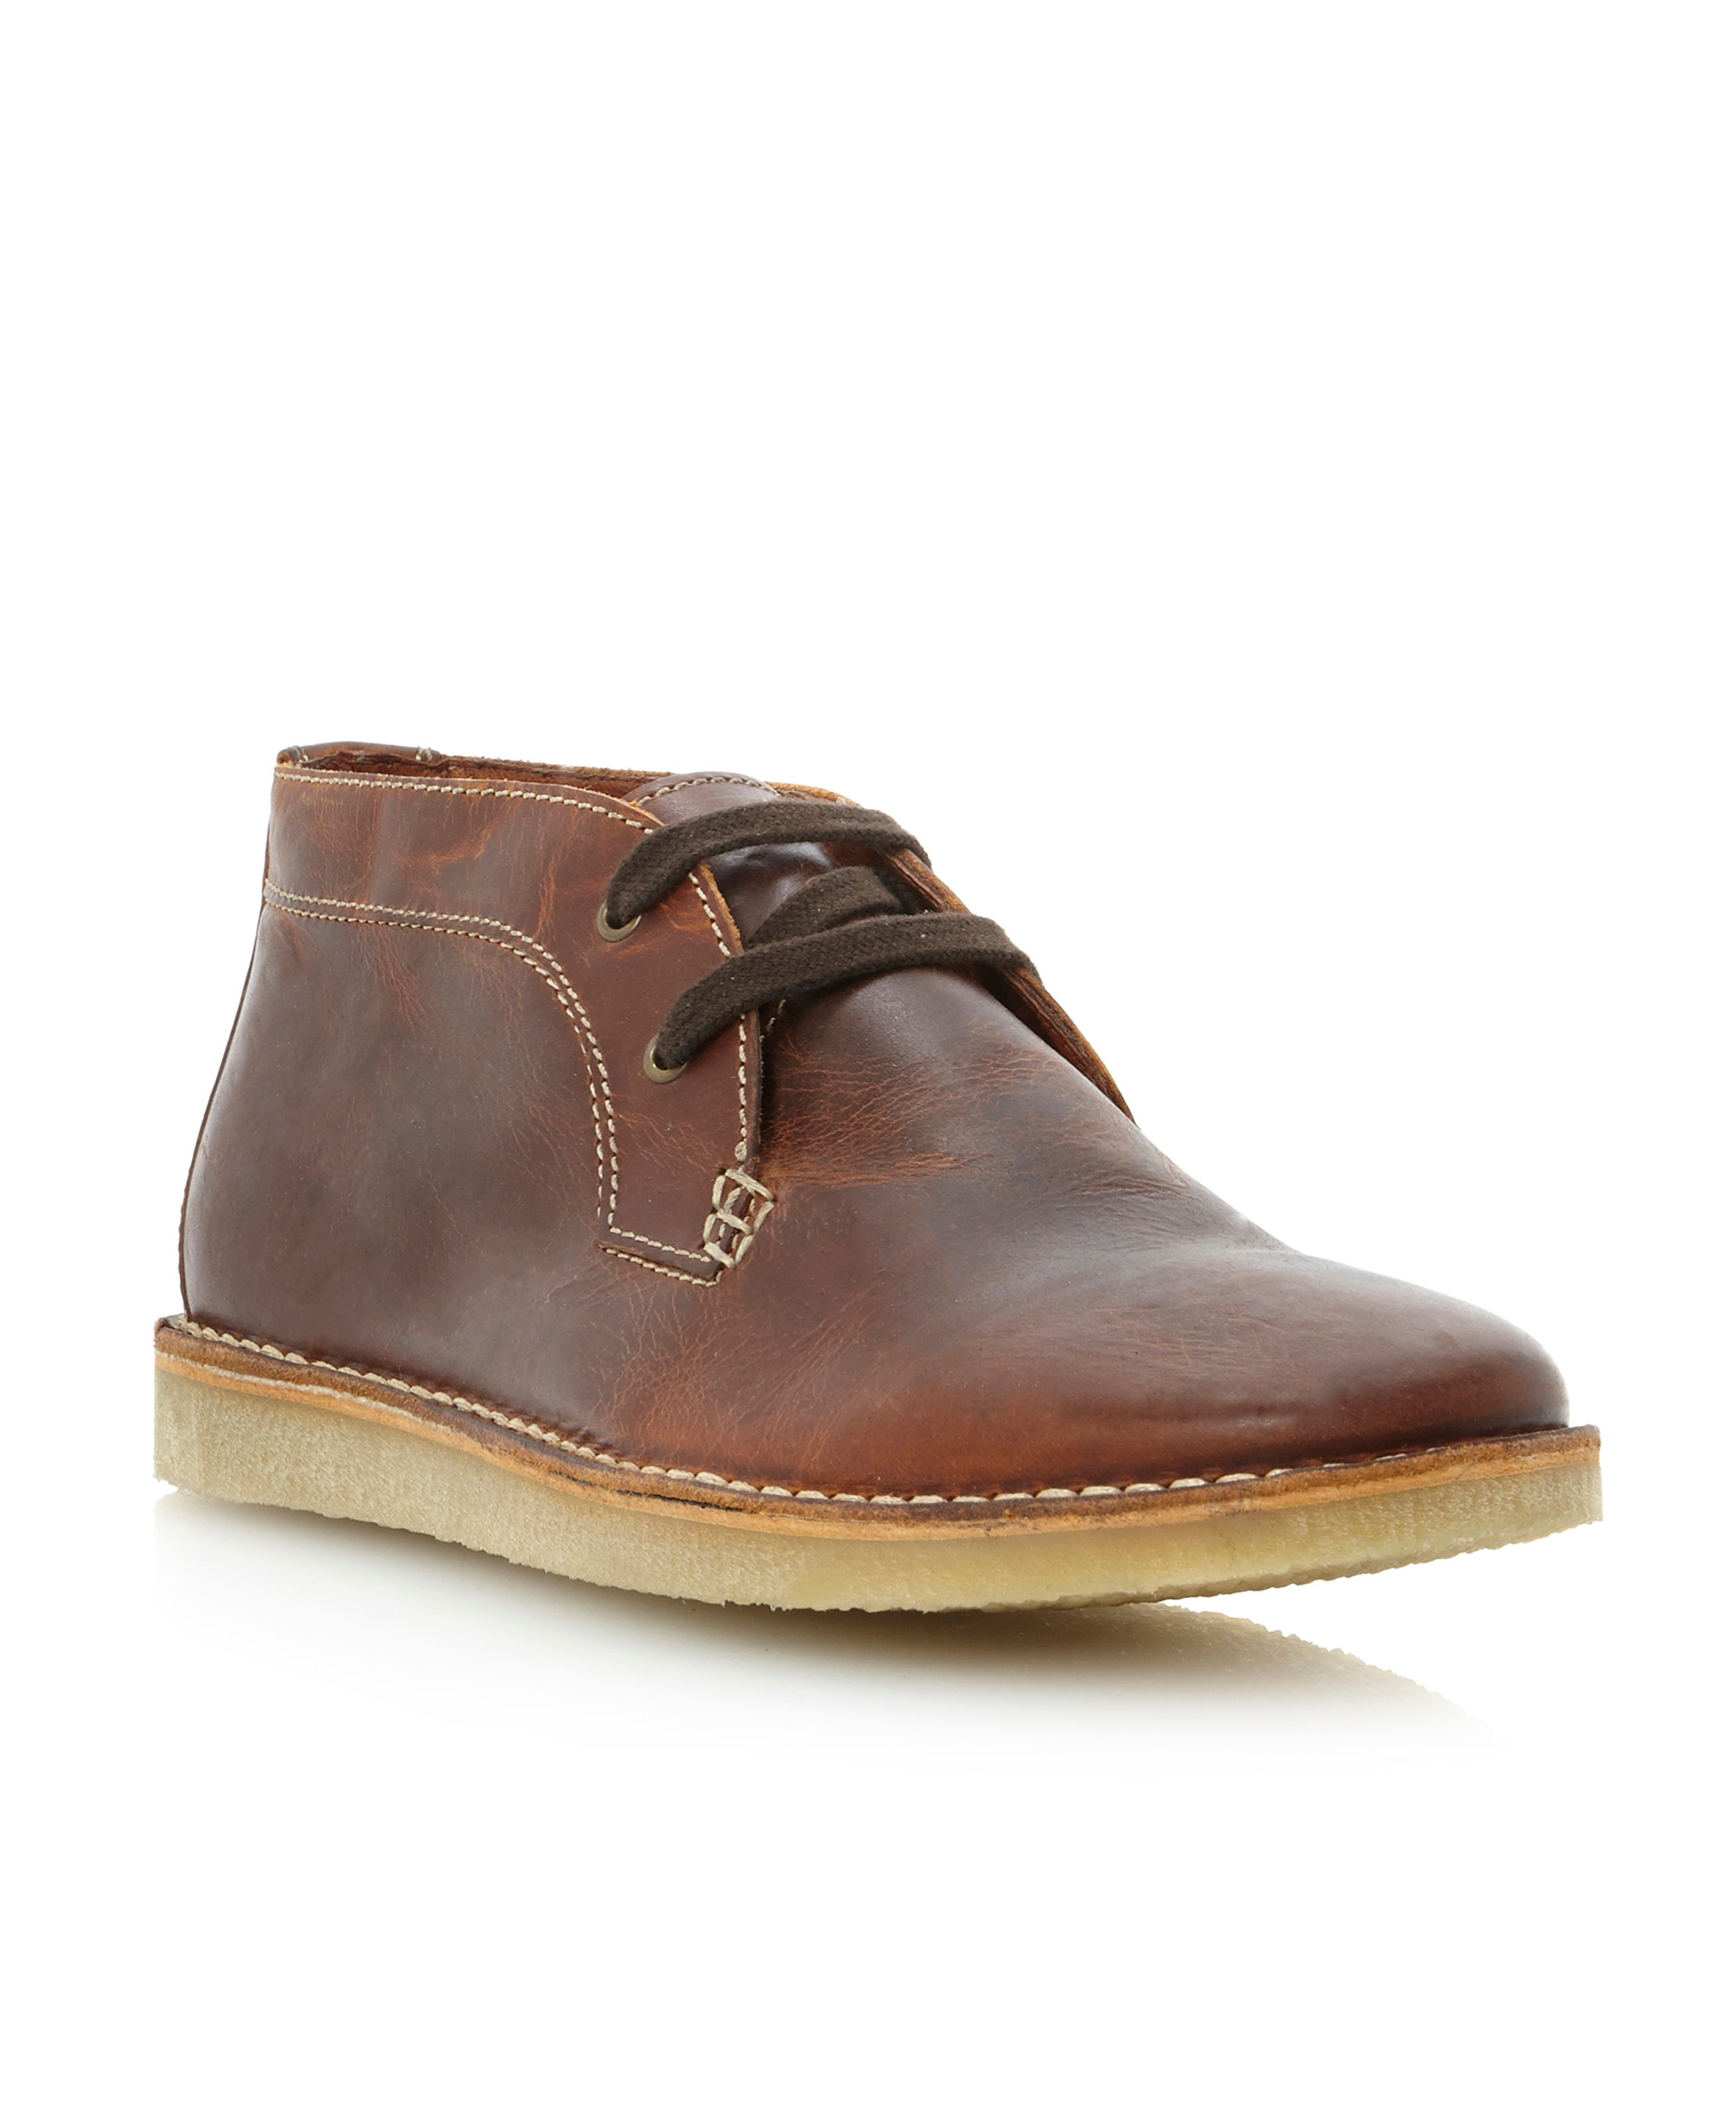 Cornwall wedge faux fur lined desert boot